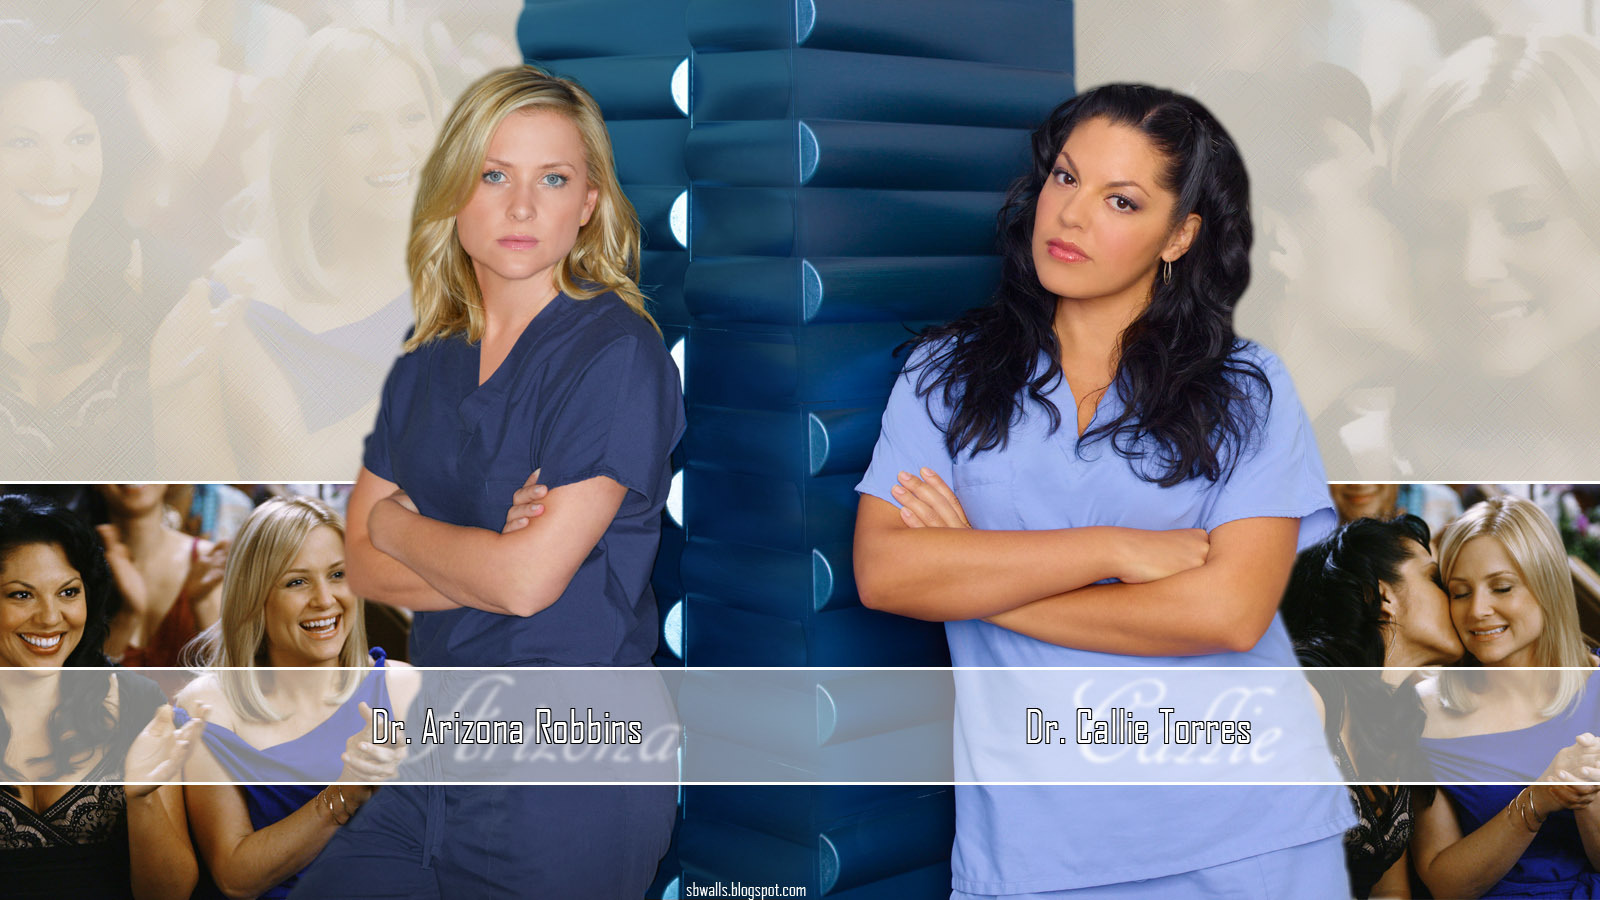 Callie & Arizona Wallpaper